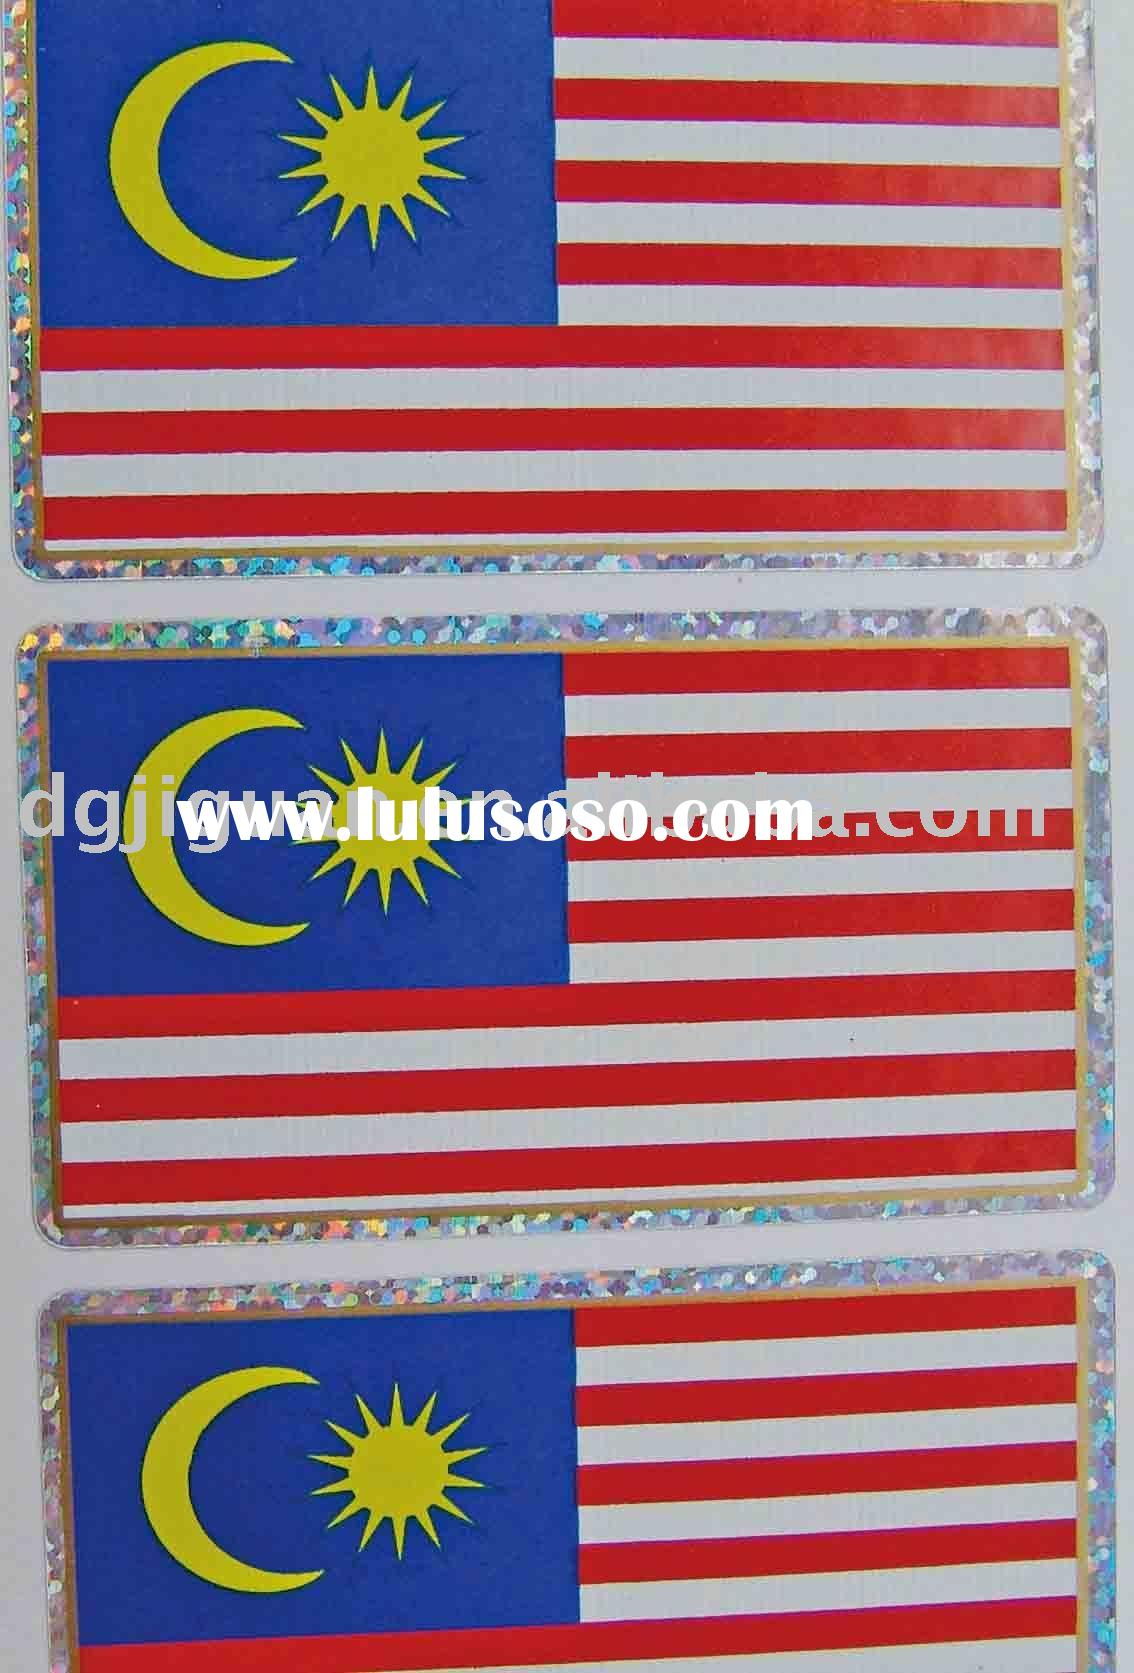 The Malaysia Banner Sticker